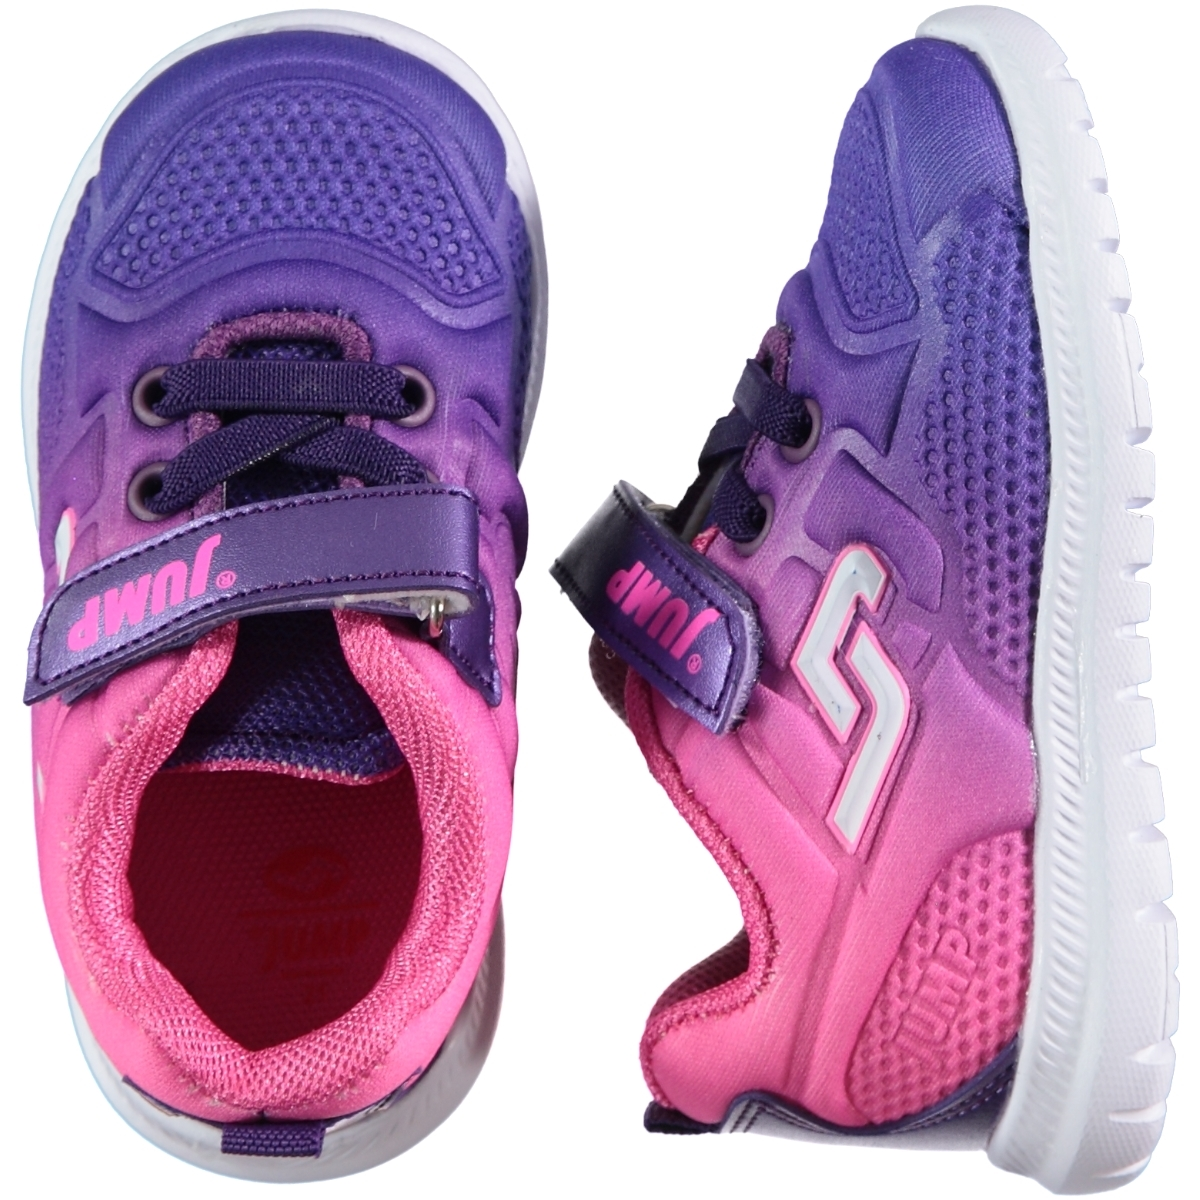 Jump 21-25 Number Of Children's Sports Shoes Purple